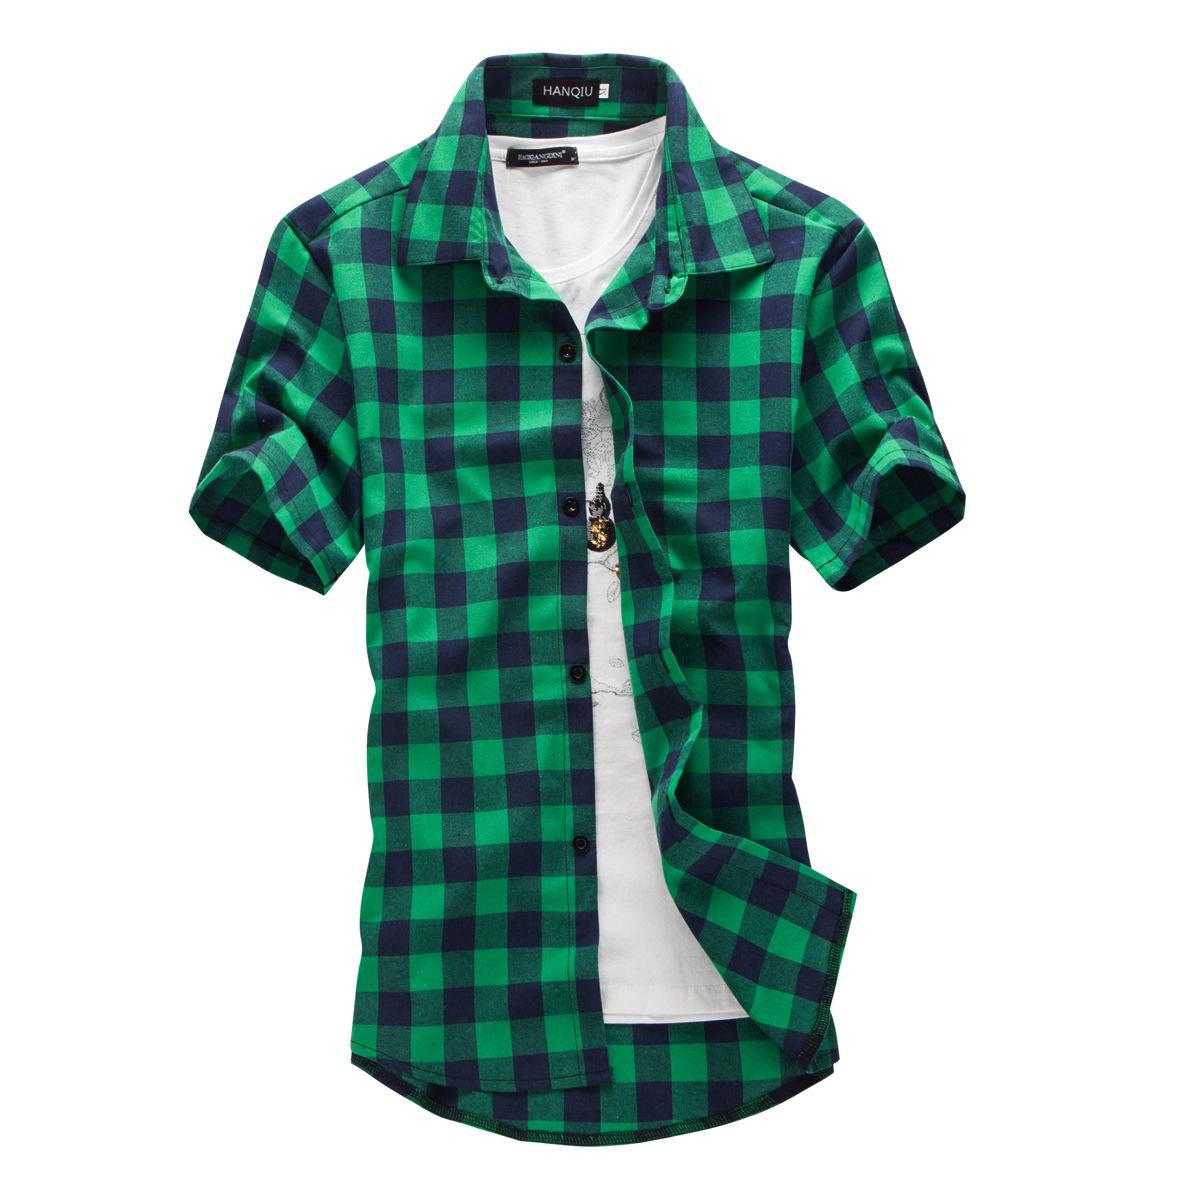 027ec281f6aa9 2019 Navy And Green Plaid Shirts Men New Arrival Summer Men S Casual Short  Sleeve Shirts Fashion Chemise Homme Men Dress Shirts From Johnbob1994